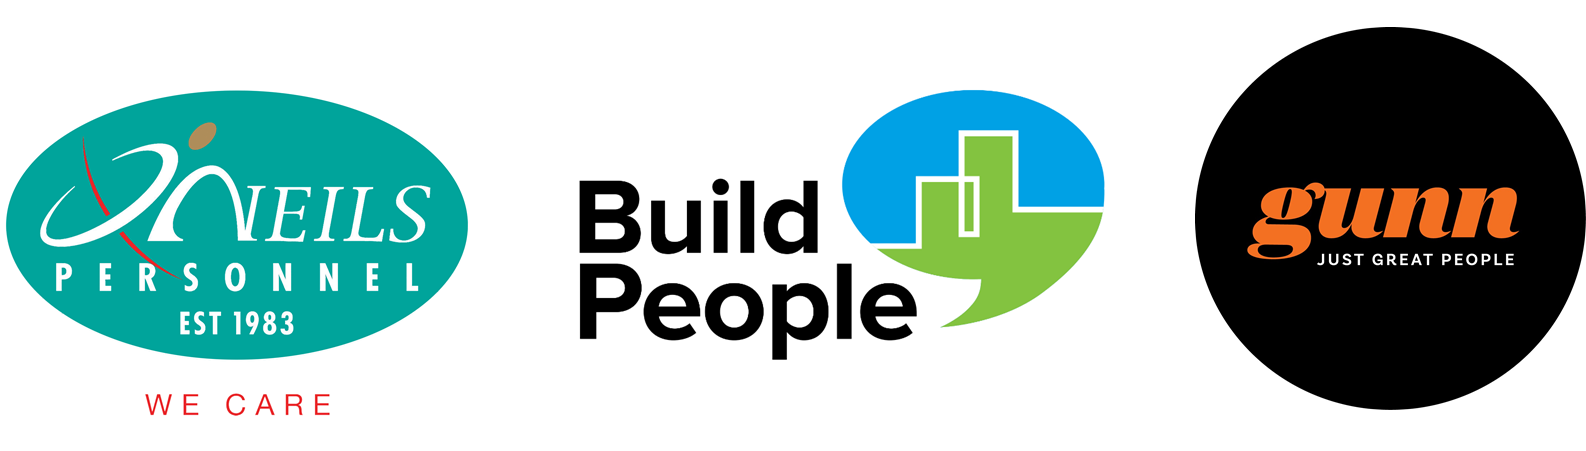 Big News from Build People!